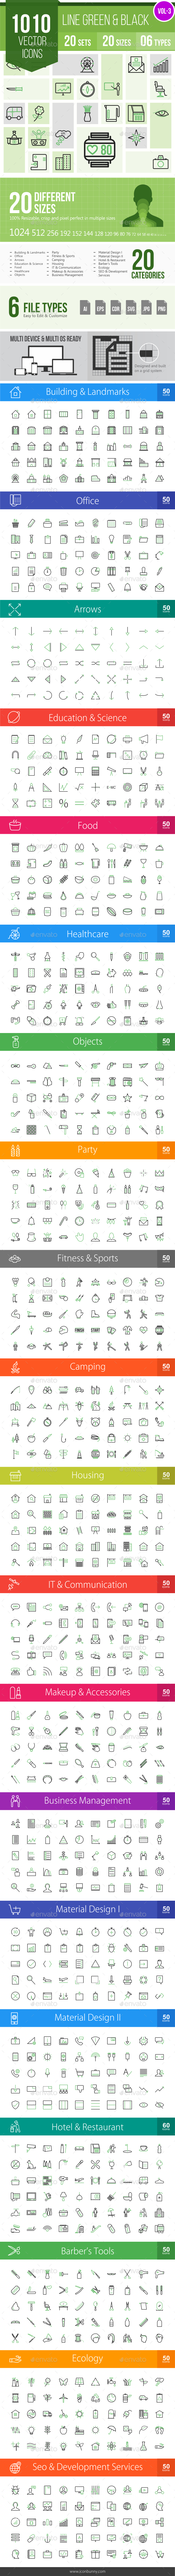 1010 Vector Green & Black Line Icons - Icons